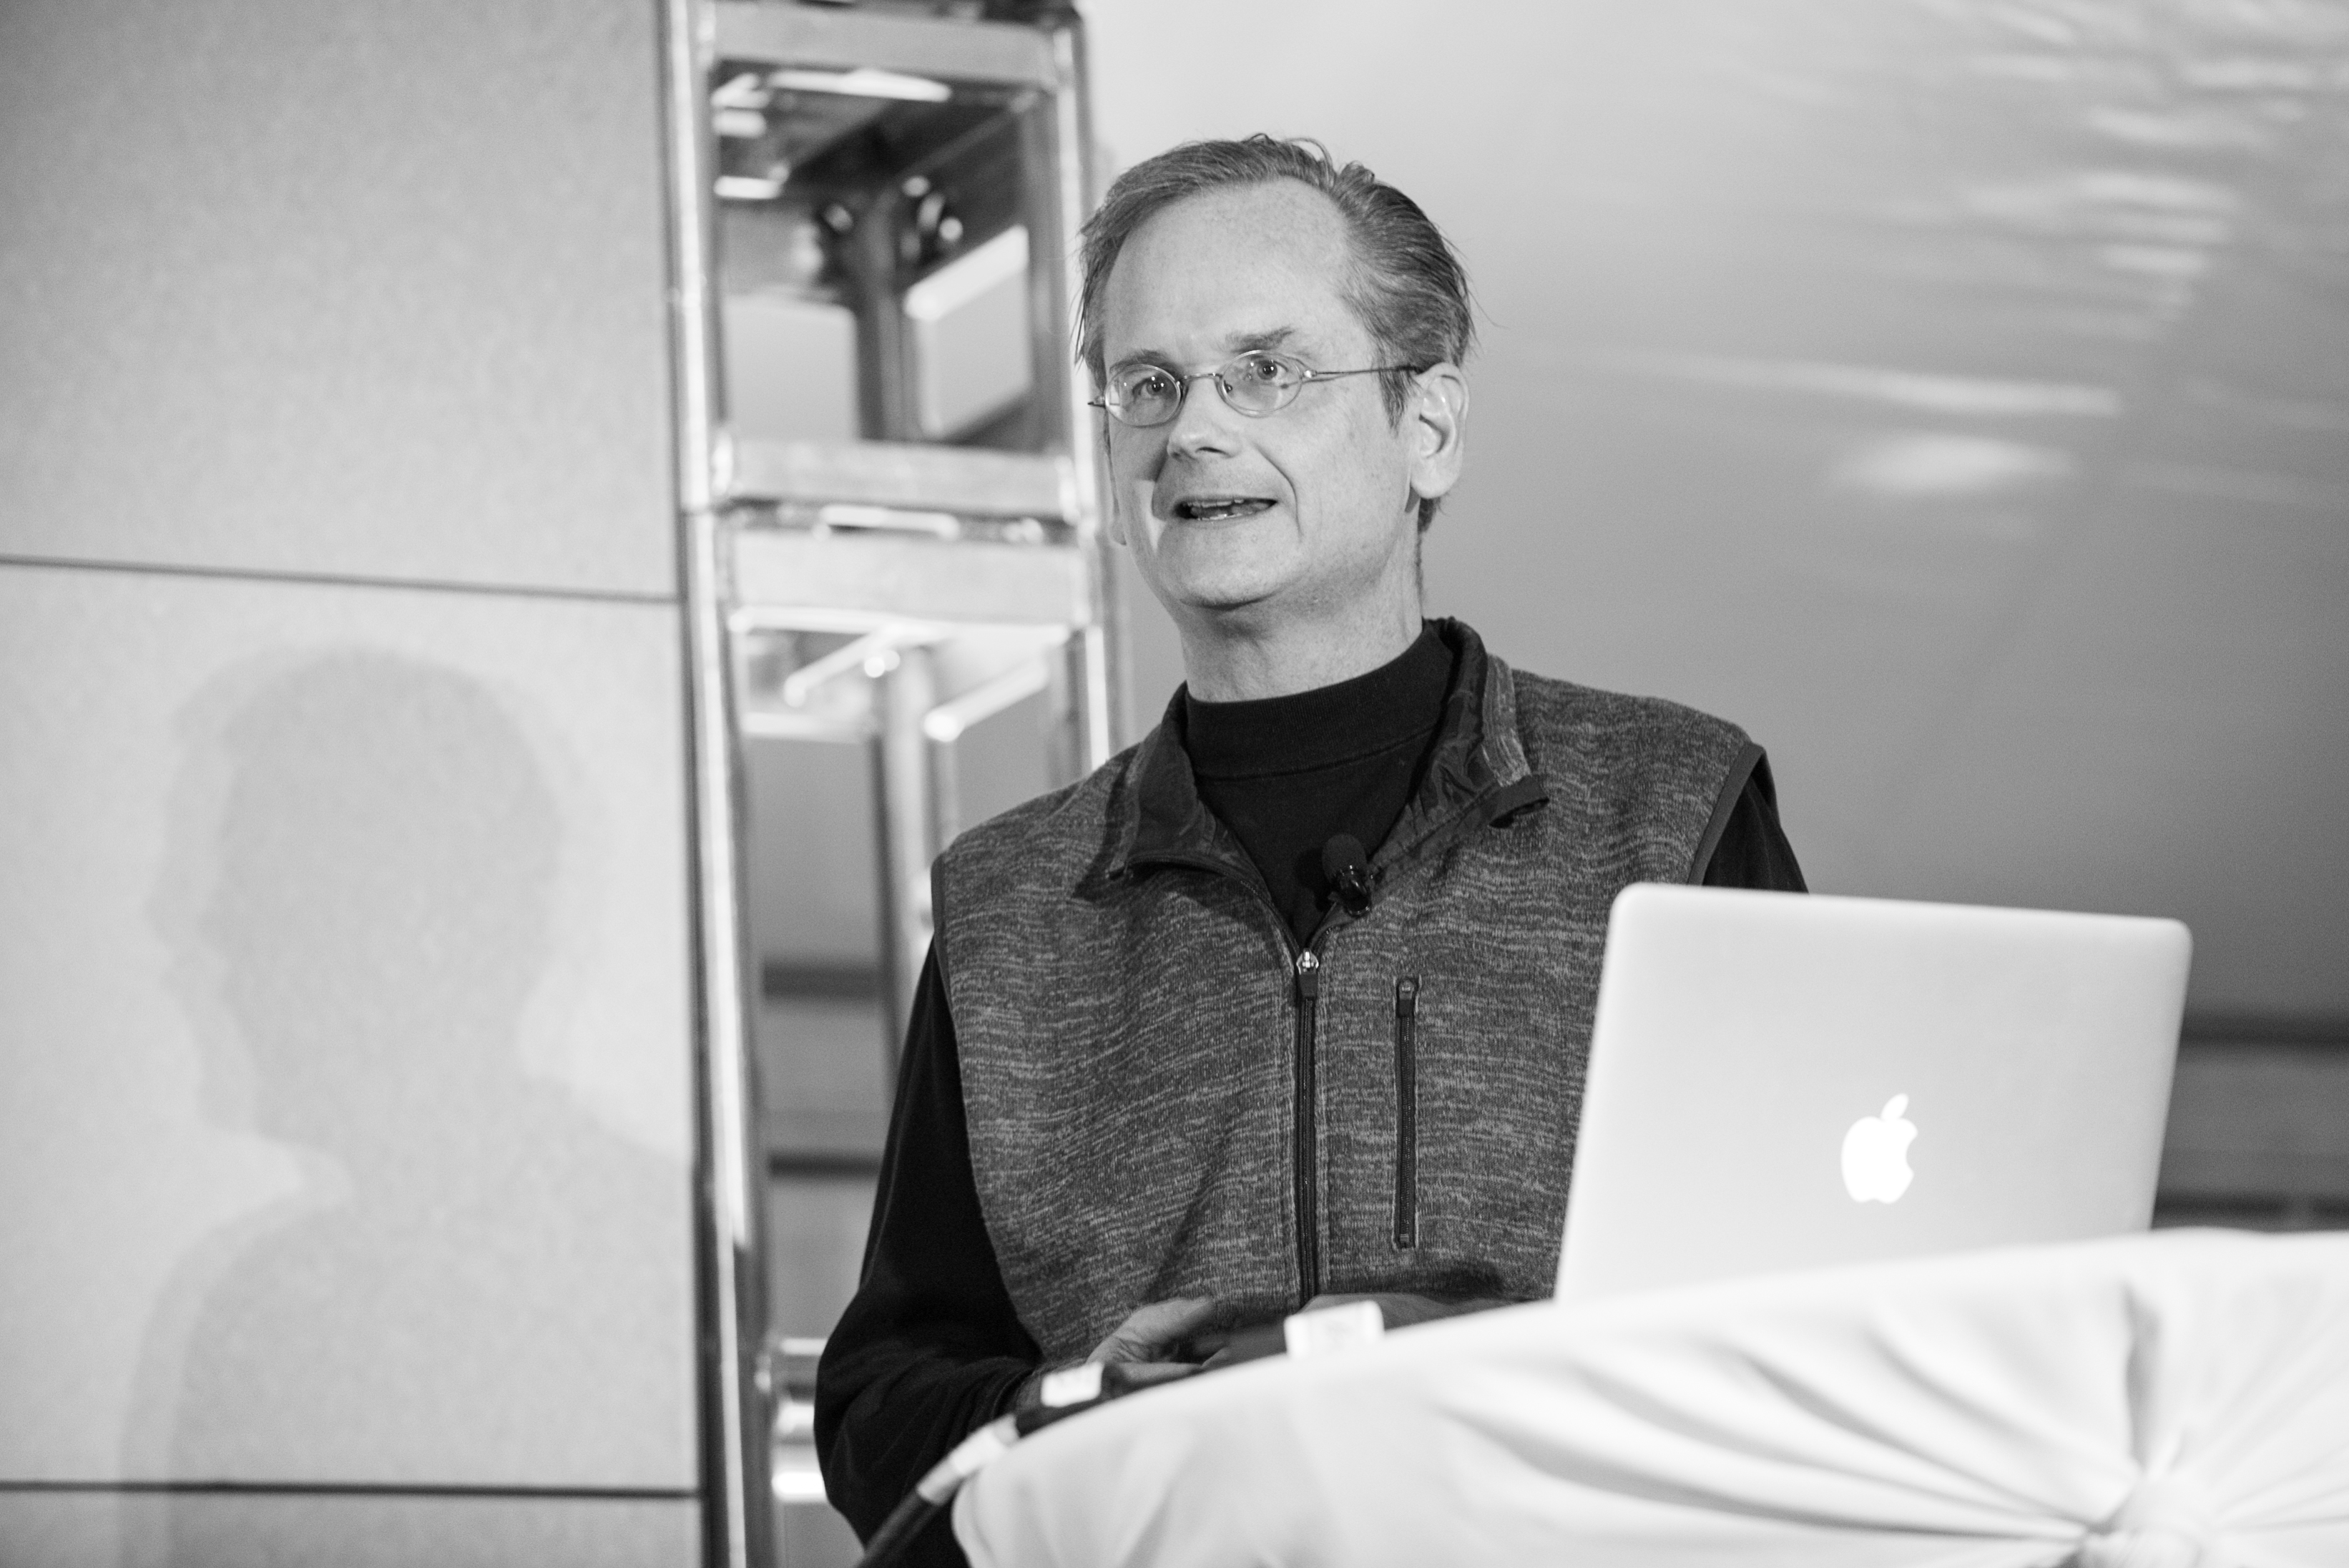 Larry Lessig speaks at the Nantucket project on September 26, 2014.